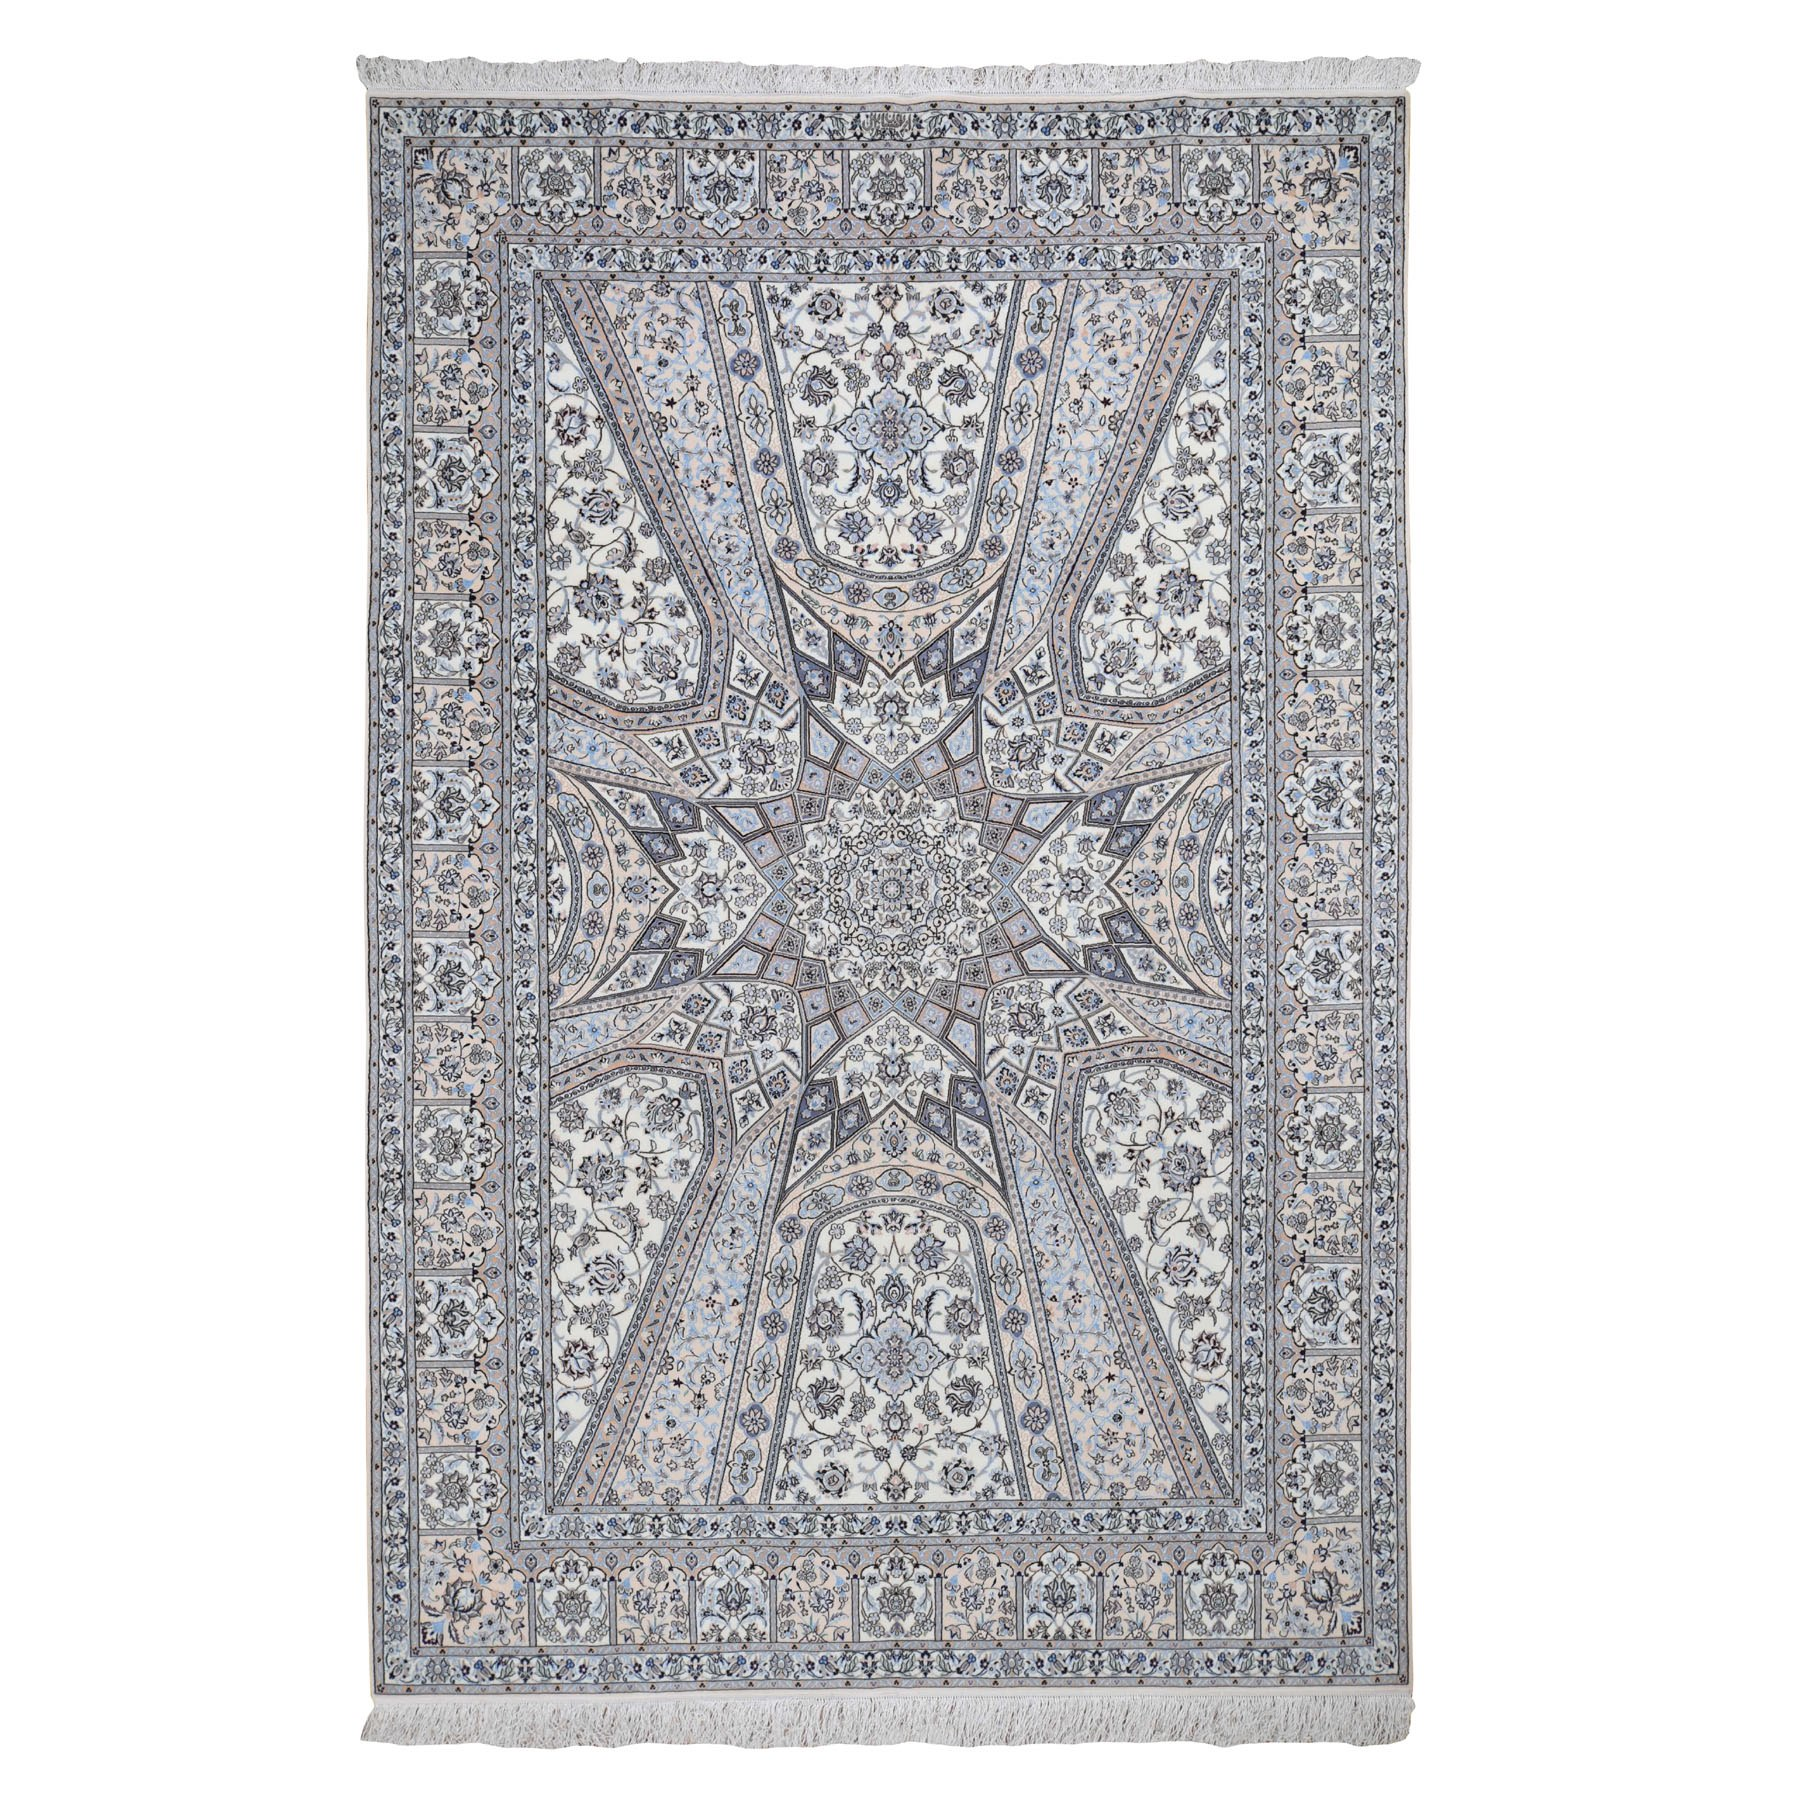 "6'8""x10'4"" New Persian Nain Wool And Silk 400 KPSI Signed Habibian ,Gumbad Design Hand Knotted Oriental Rug"